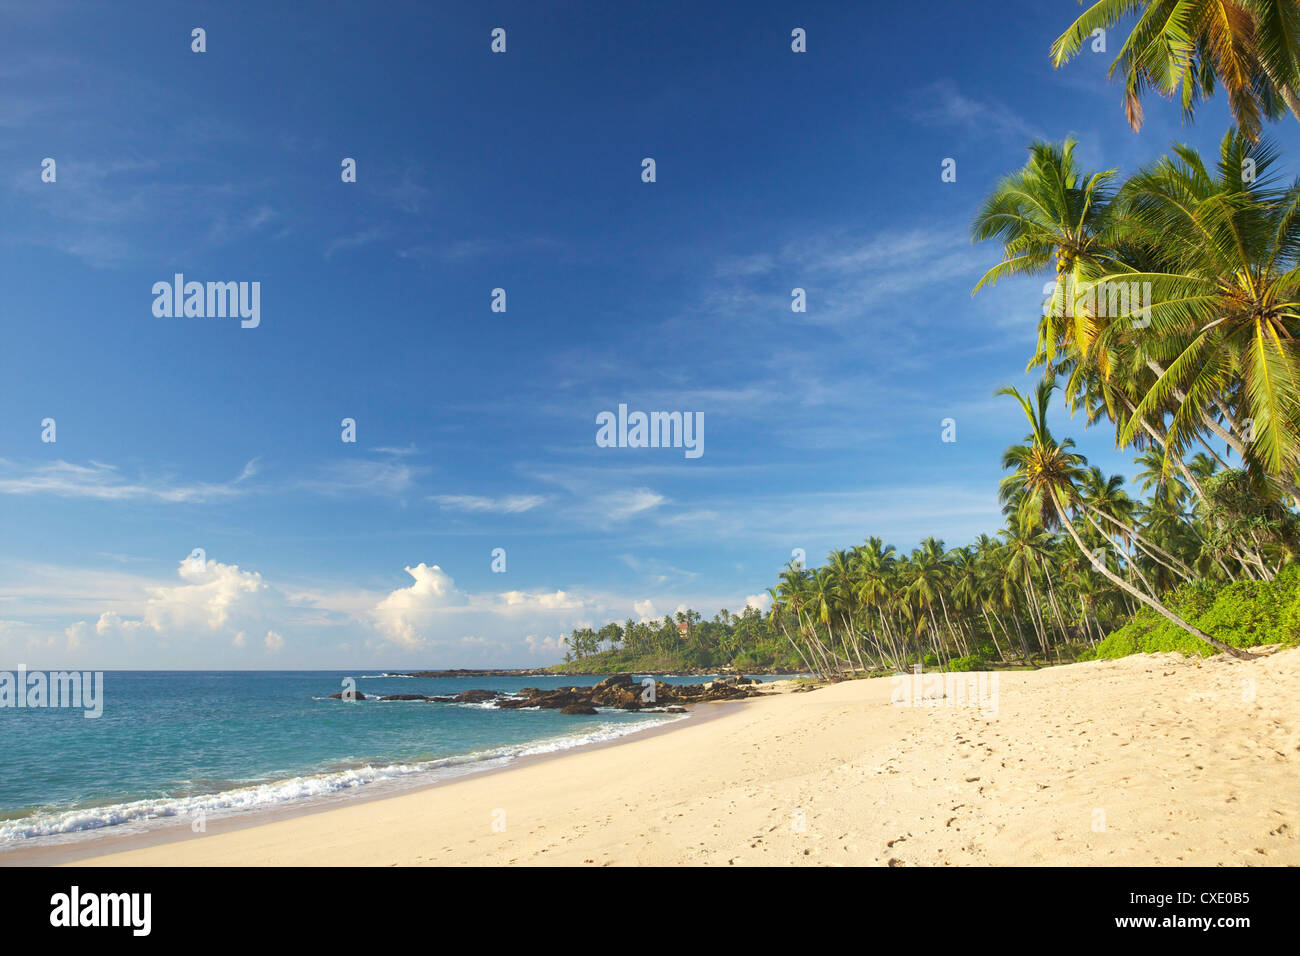 View of the unspoilt beach at Palm Paradise Cabanas, Tangalle, South coast, Sri Lanka, Asia - Stock Image